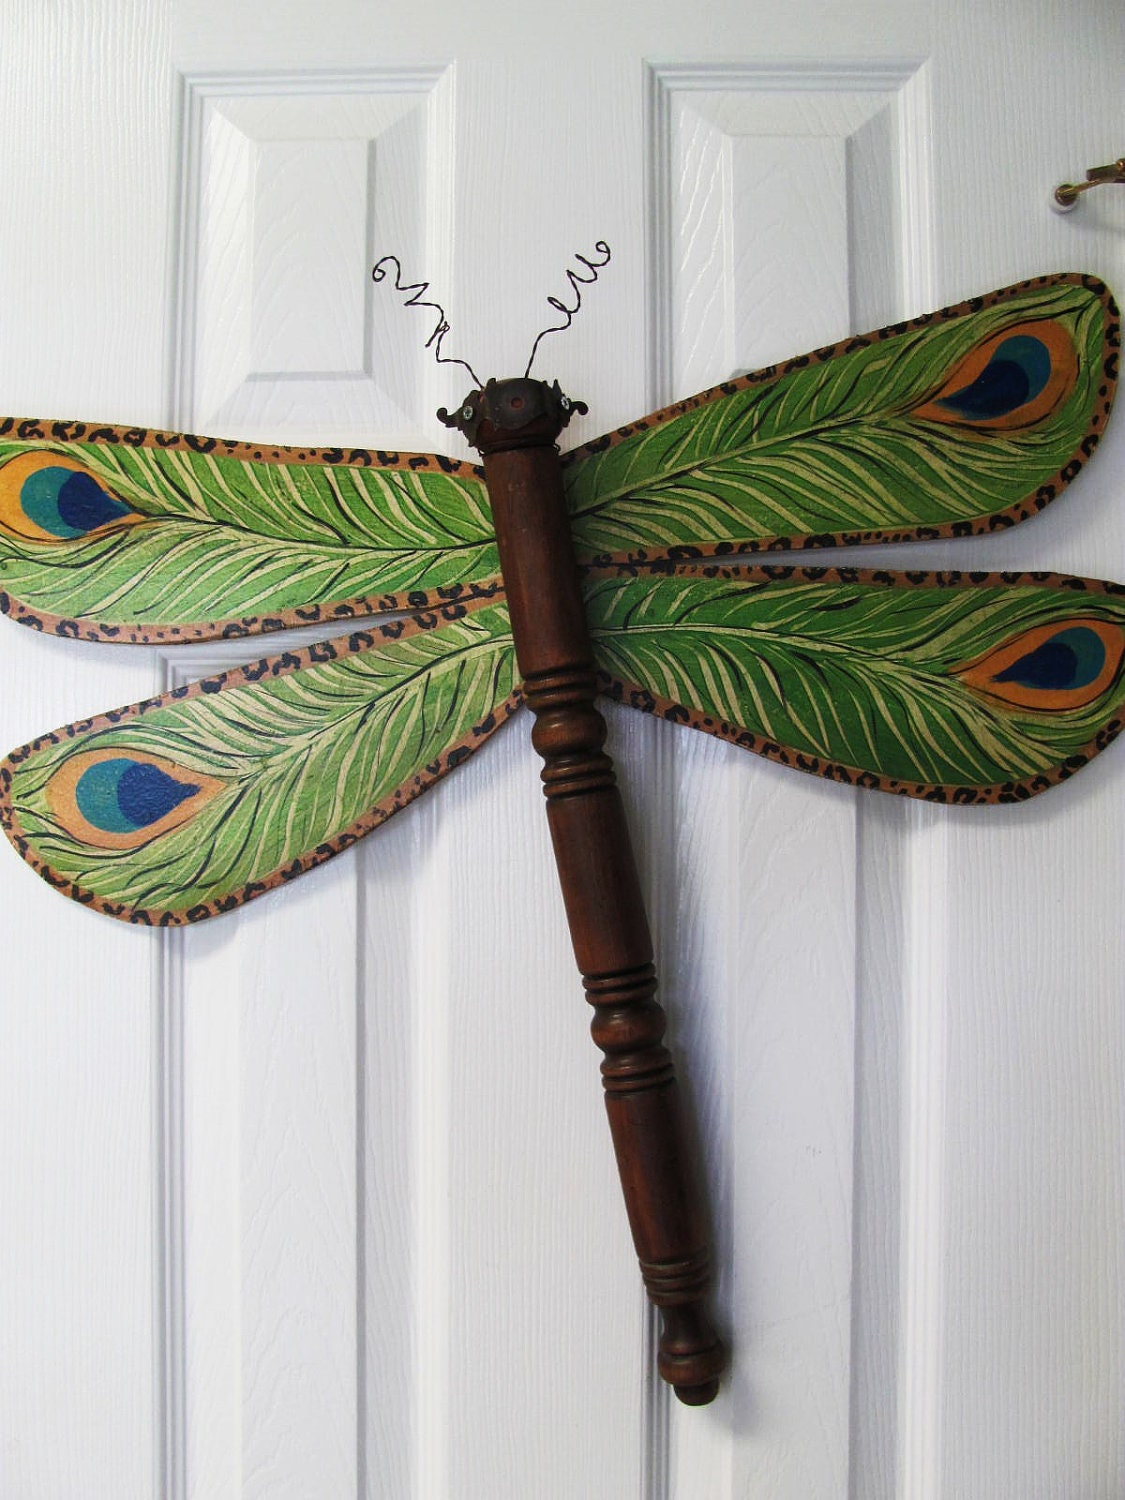 Table leg dragonfly wall or garden art by lucydesignsonline for A decoration that is twisted intertwined or curled